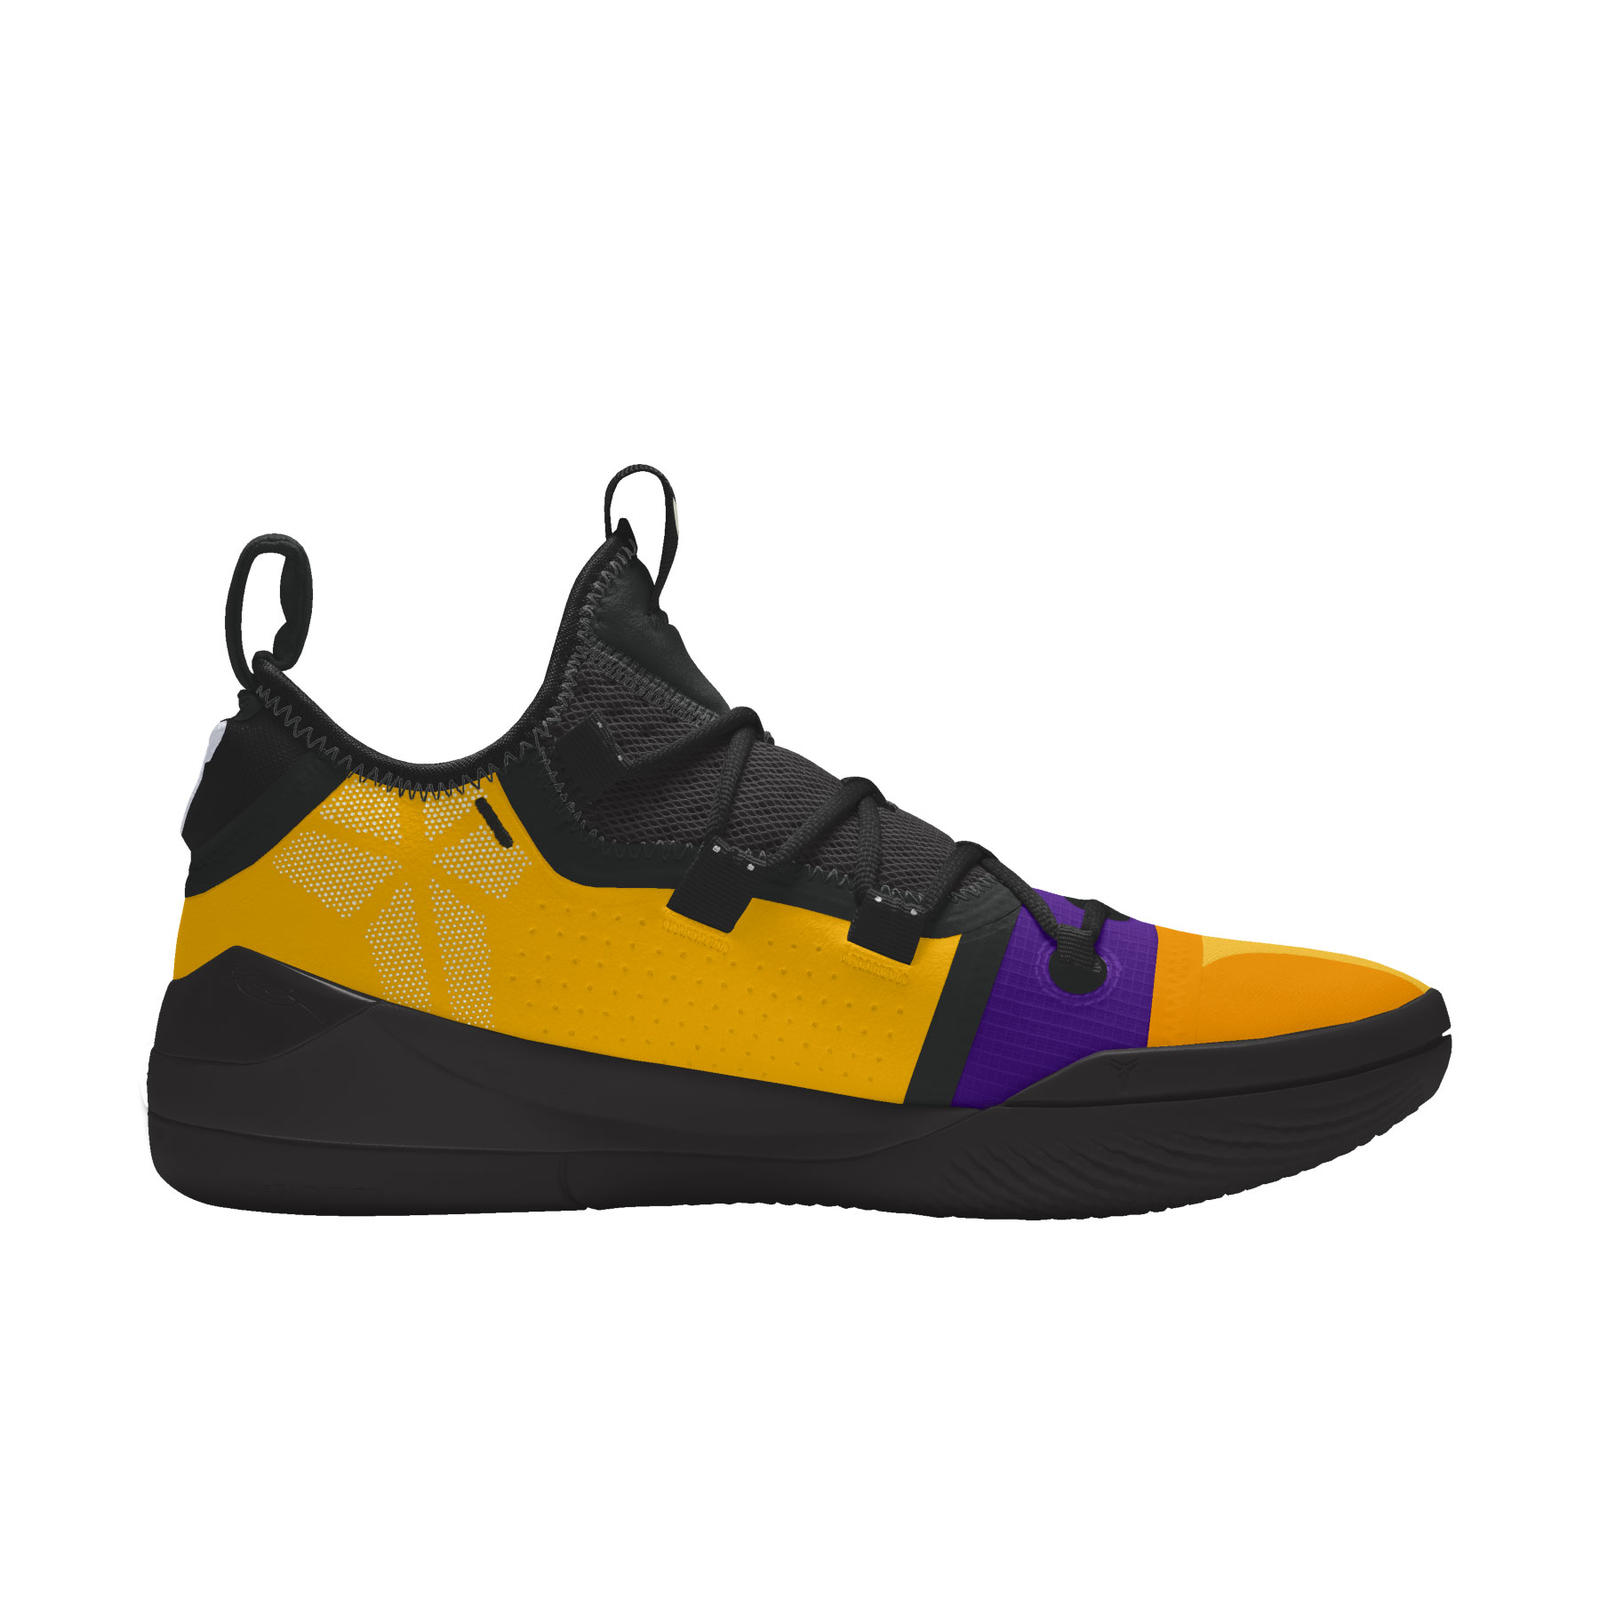 f543657d676f8 Here s a first look at the 2018 Opening Week NBA x NikeID Player Editions